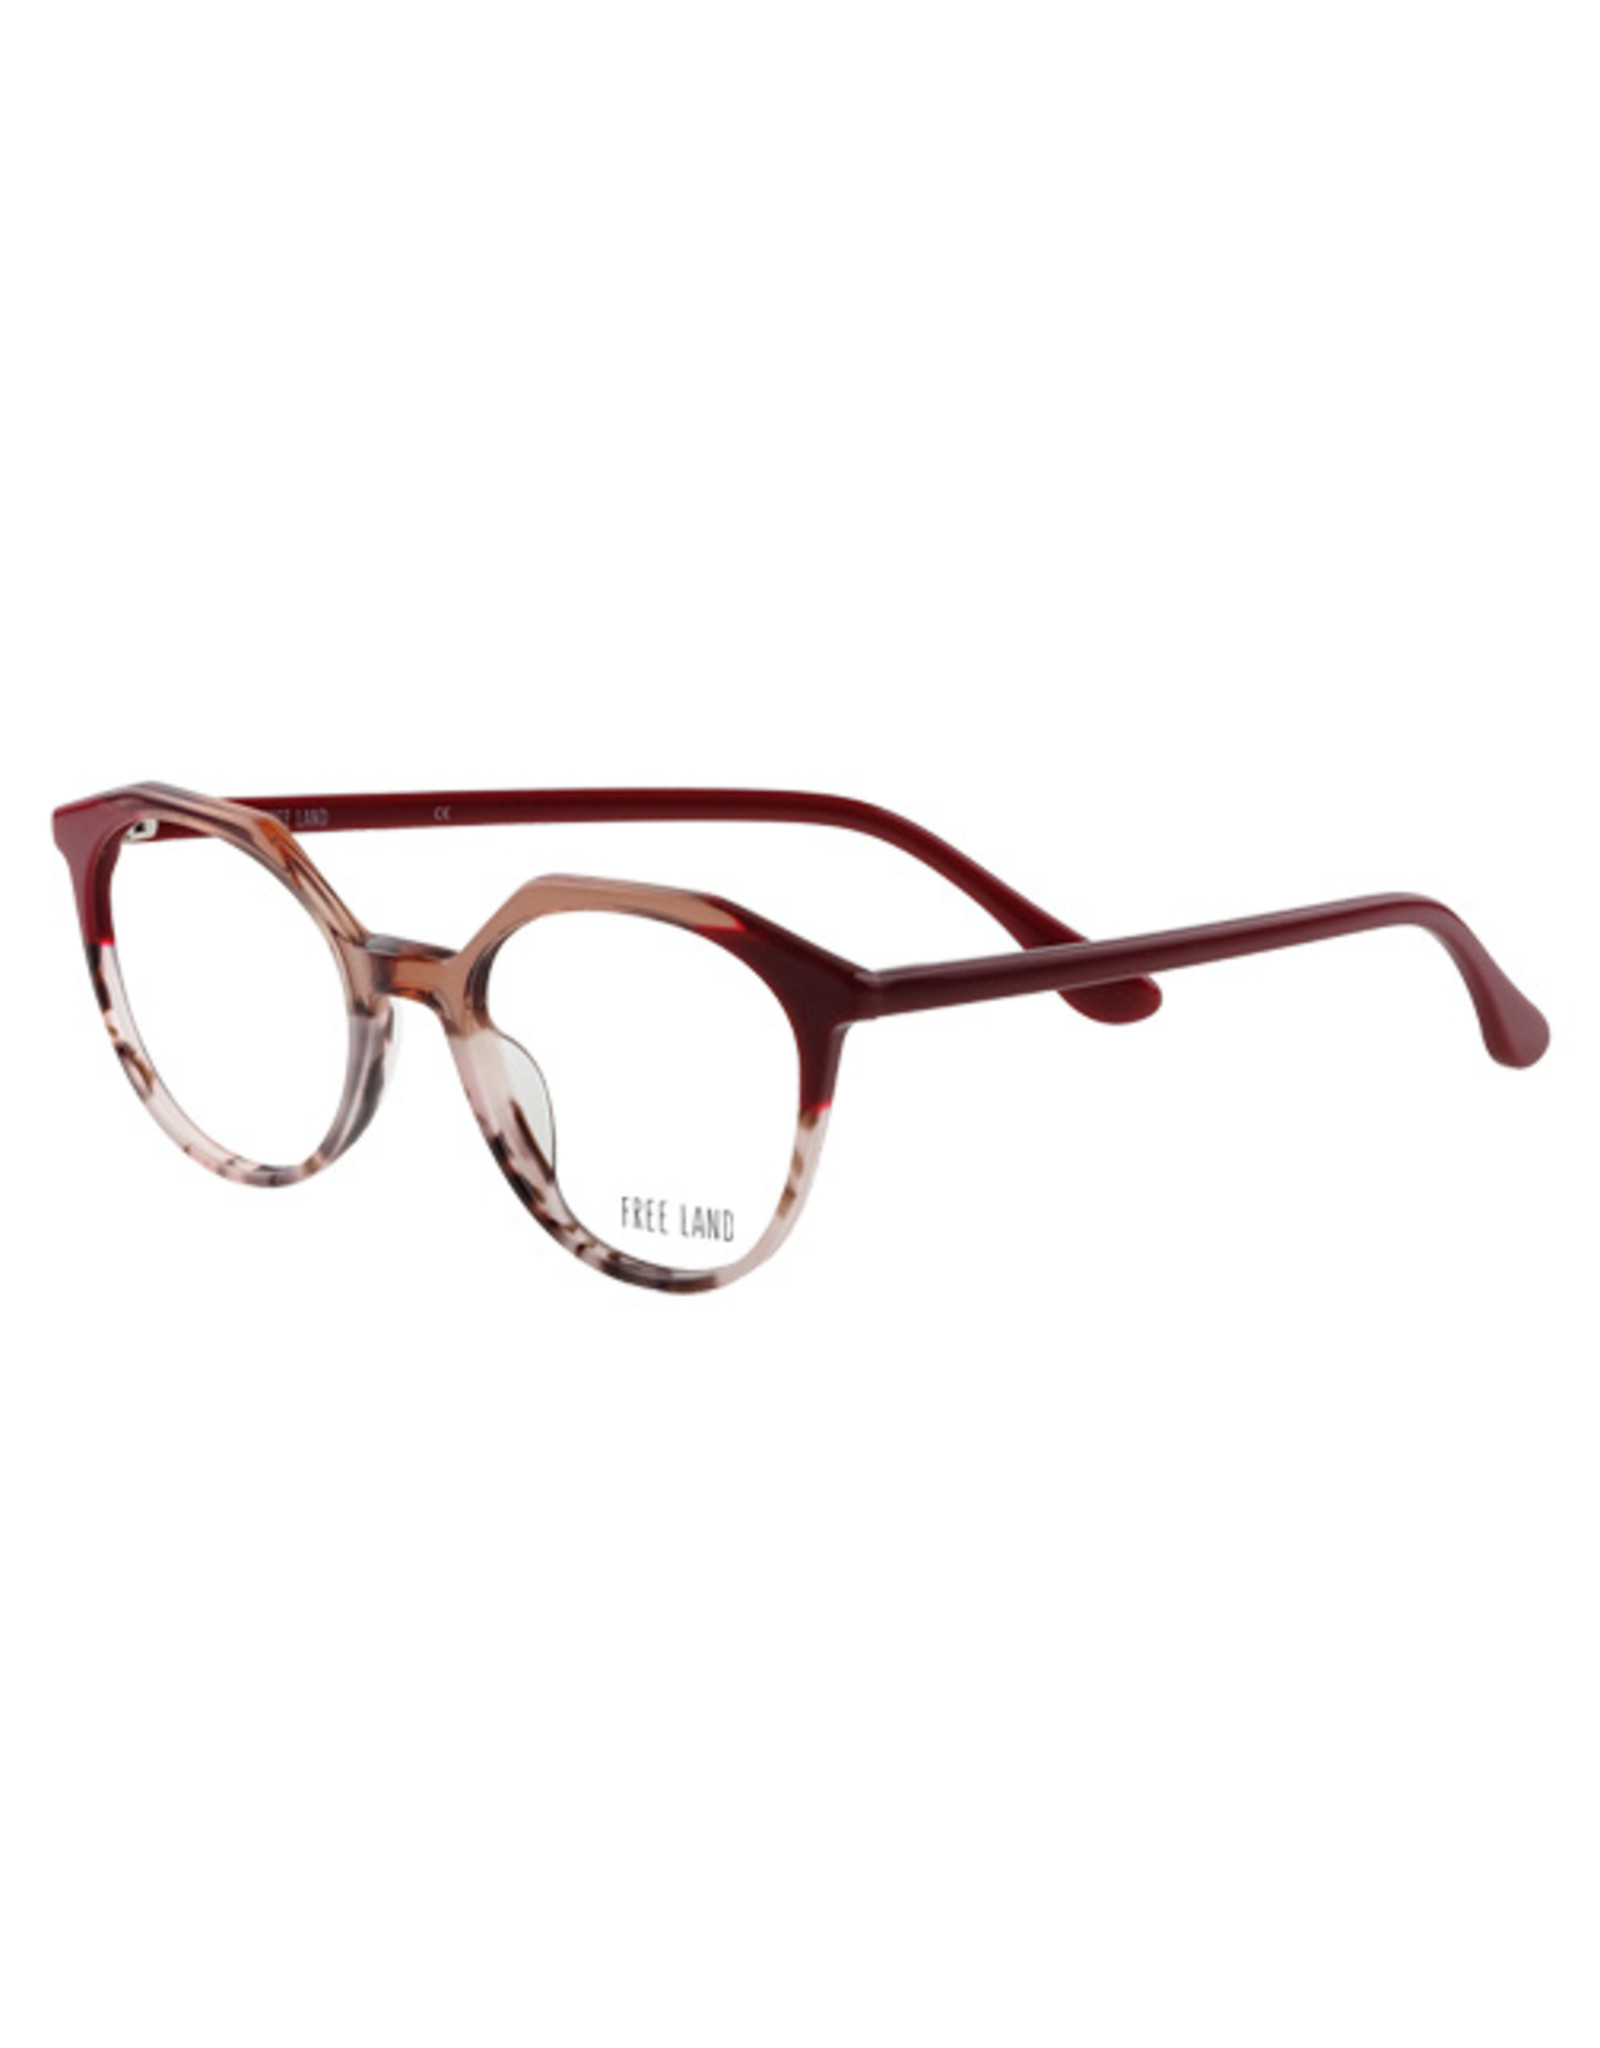 Freeland Emily 71104 348 (brown red)